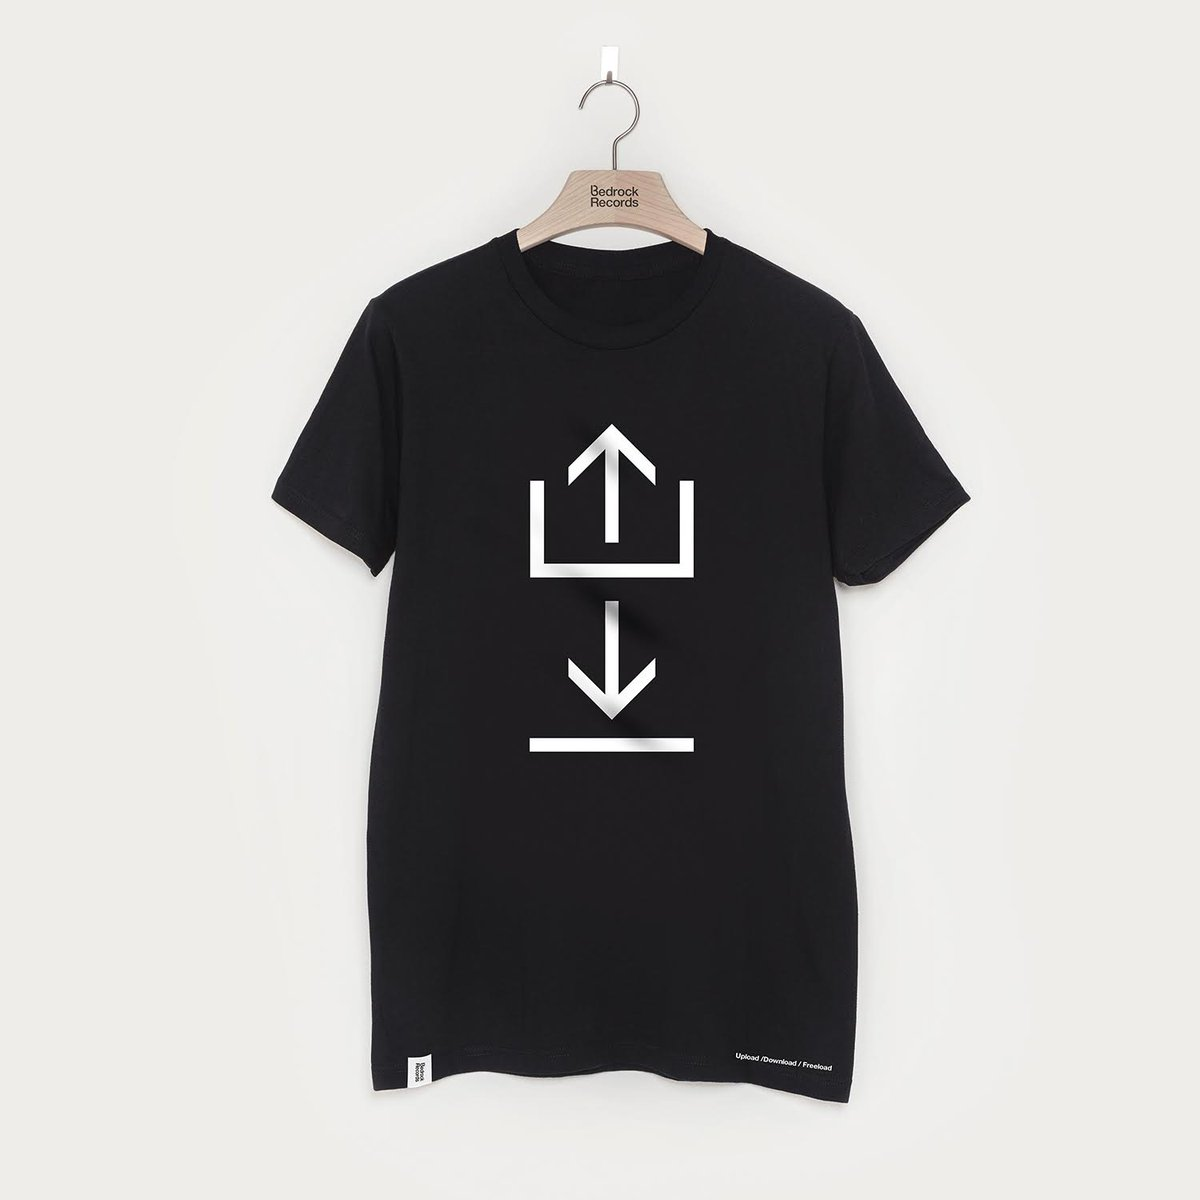 Design t shirt upload picture - John Digweed On Twitter Check Out This Cool Upload Design T Shirt On Bedrockrecords Store Summer Sale S On At Https T Co Zuyrelh3sh